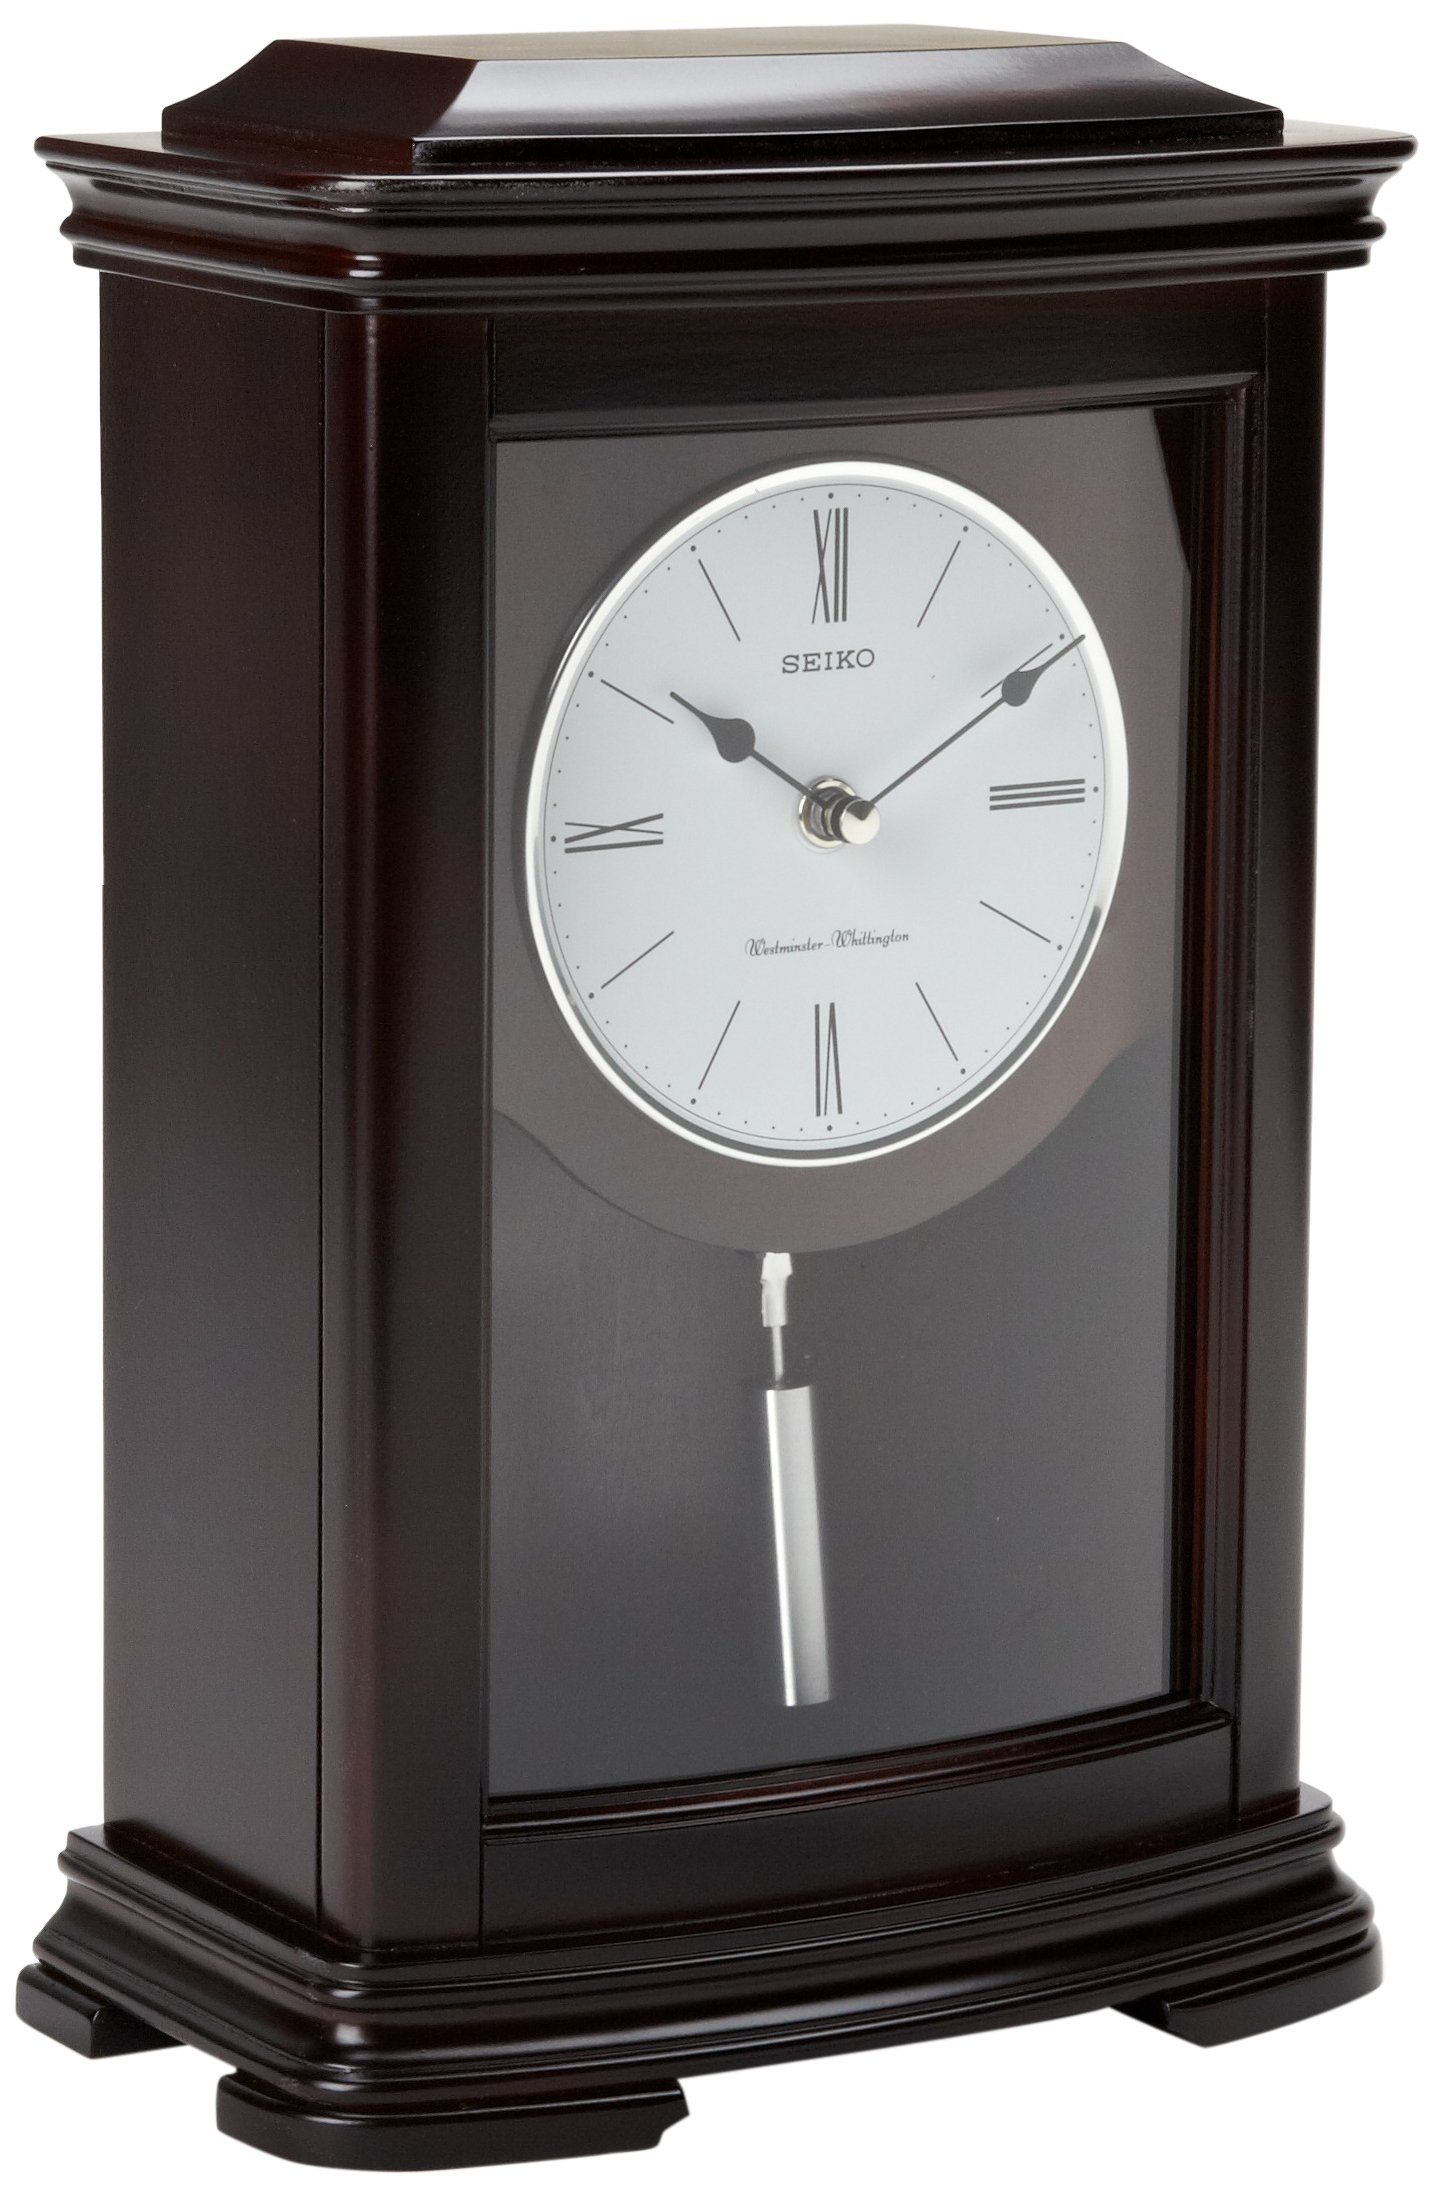 Seiko Mantel Chime with Pendulum Clock Dark Brown Alder Case by Seiko